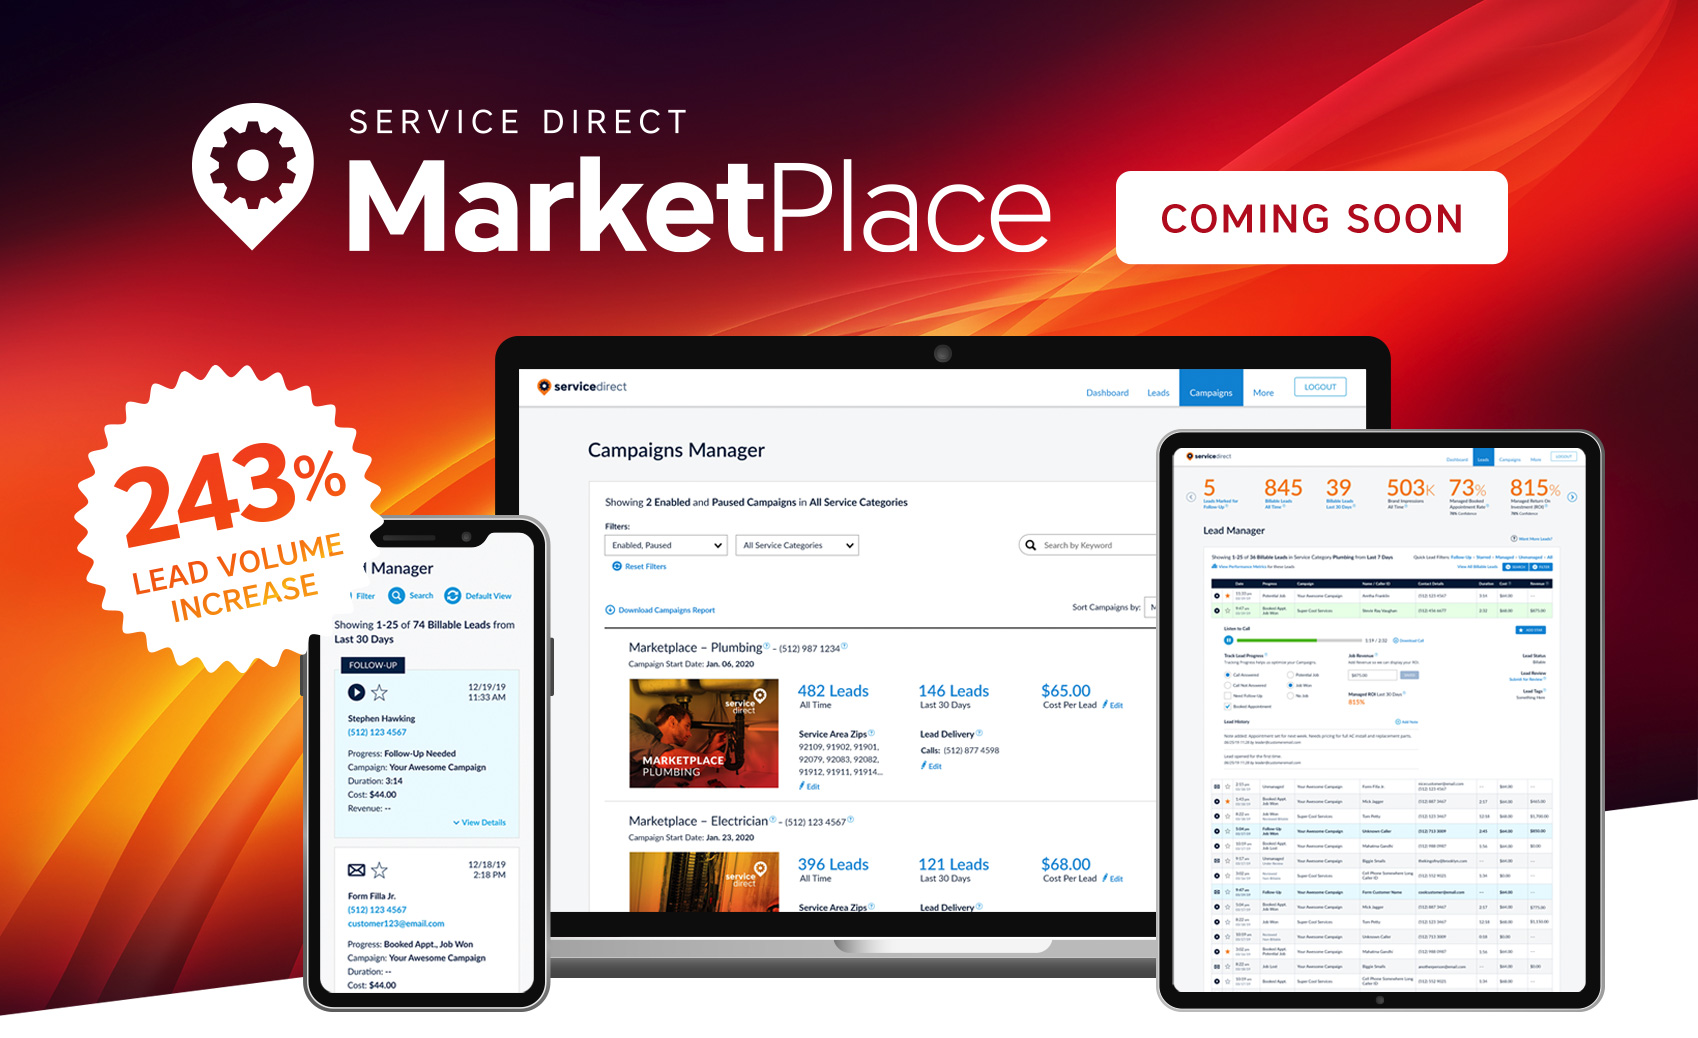 Introducing Service Direct Marketplace